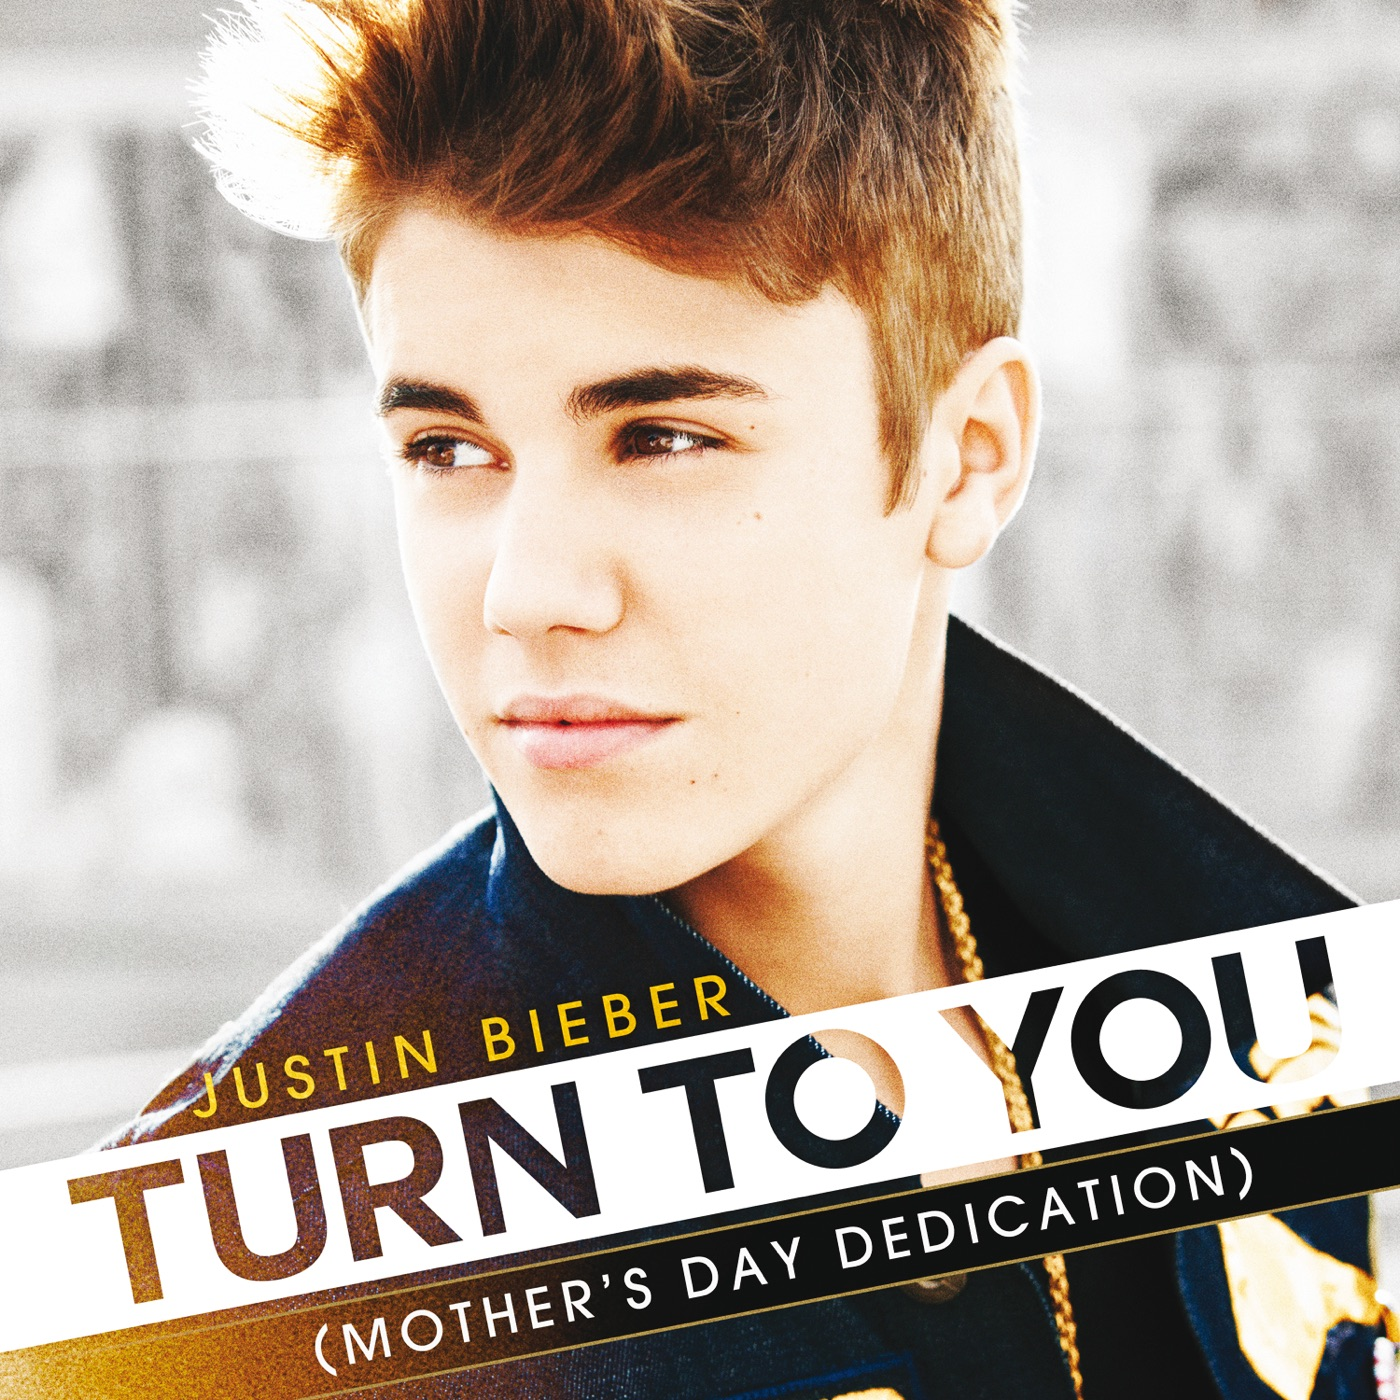 Justin Bieber - Turn to You (Mother's Day Dedication) - Single Cover